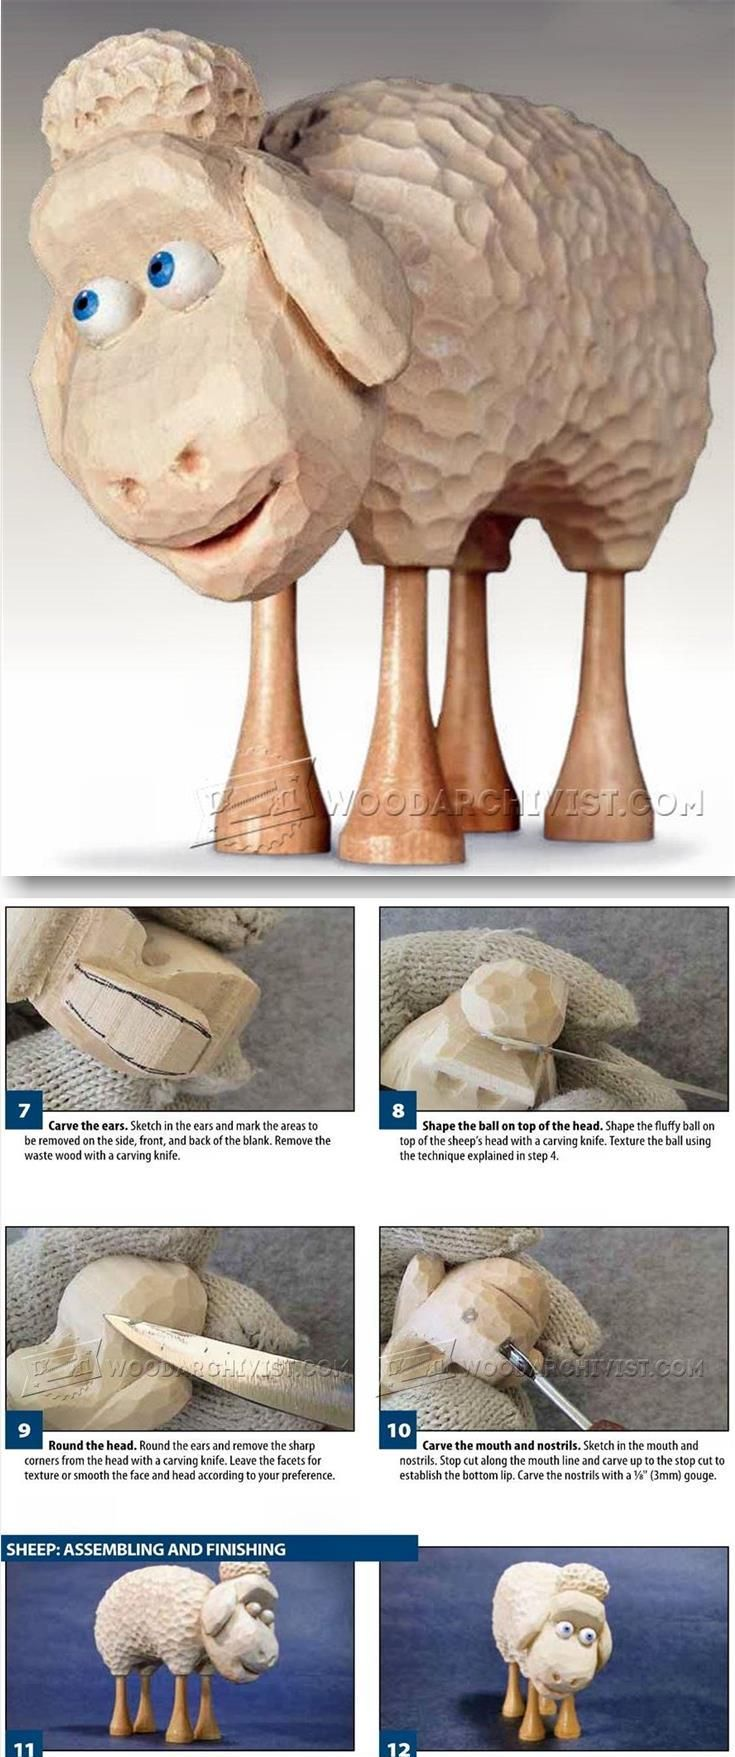 Sheep carving wood carving patterns and techniques woodarchivist